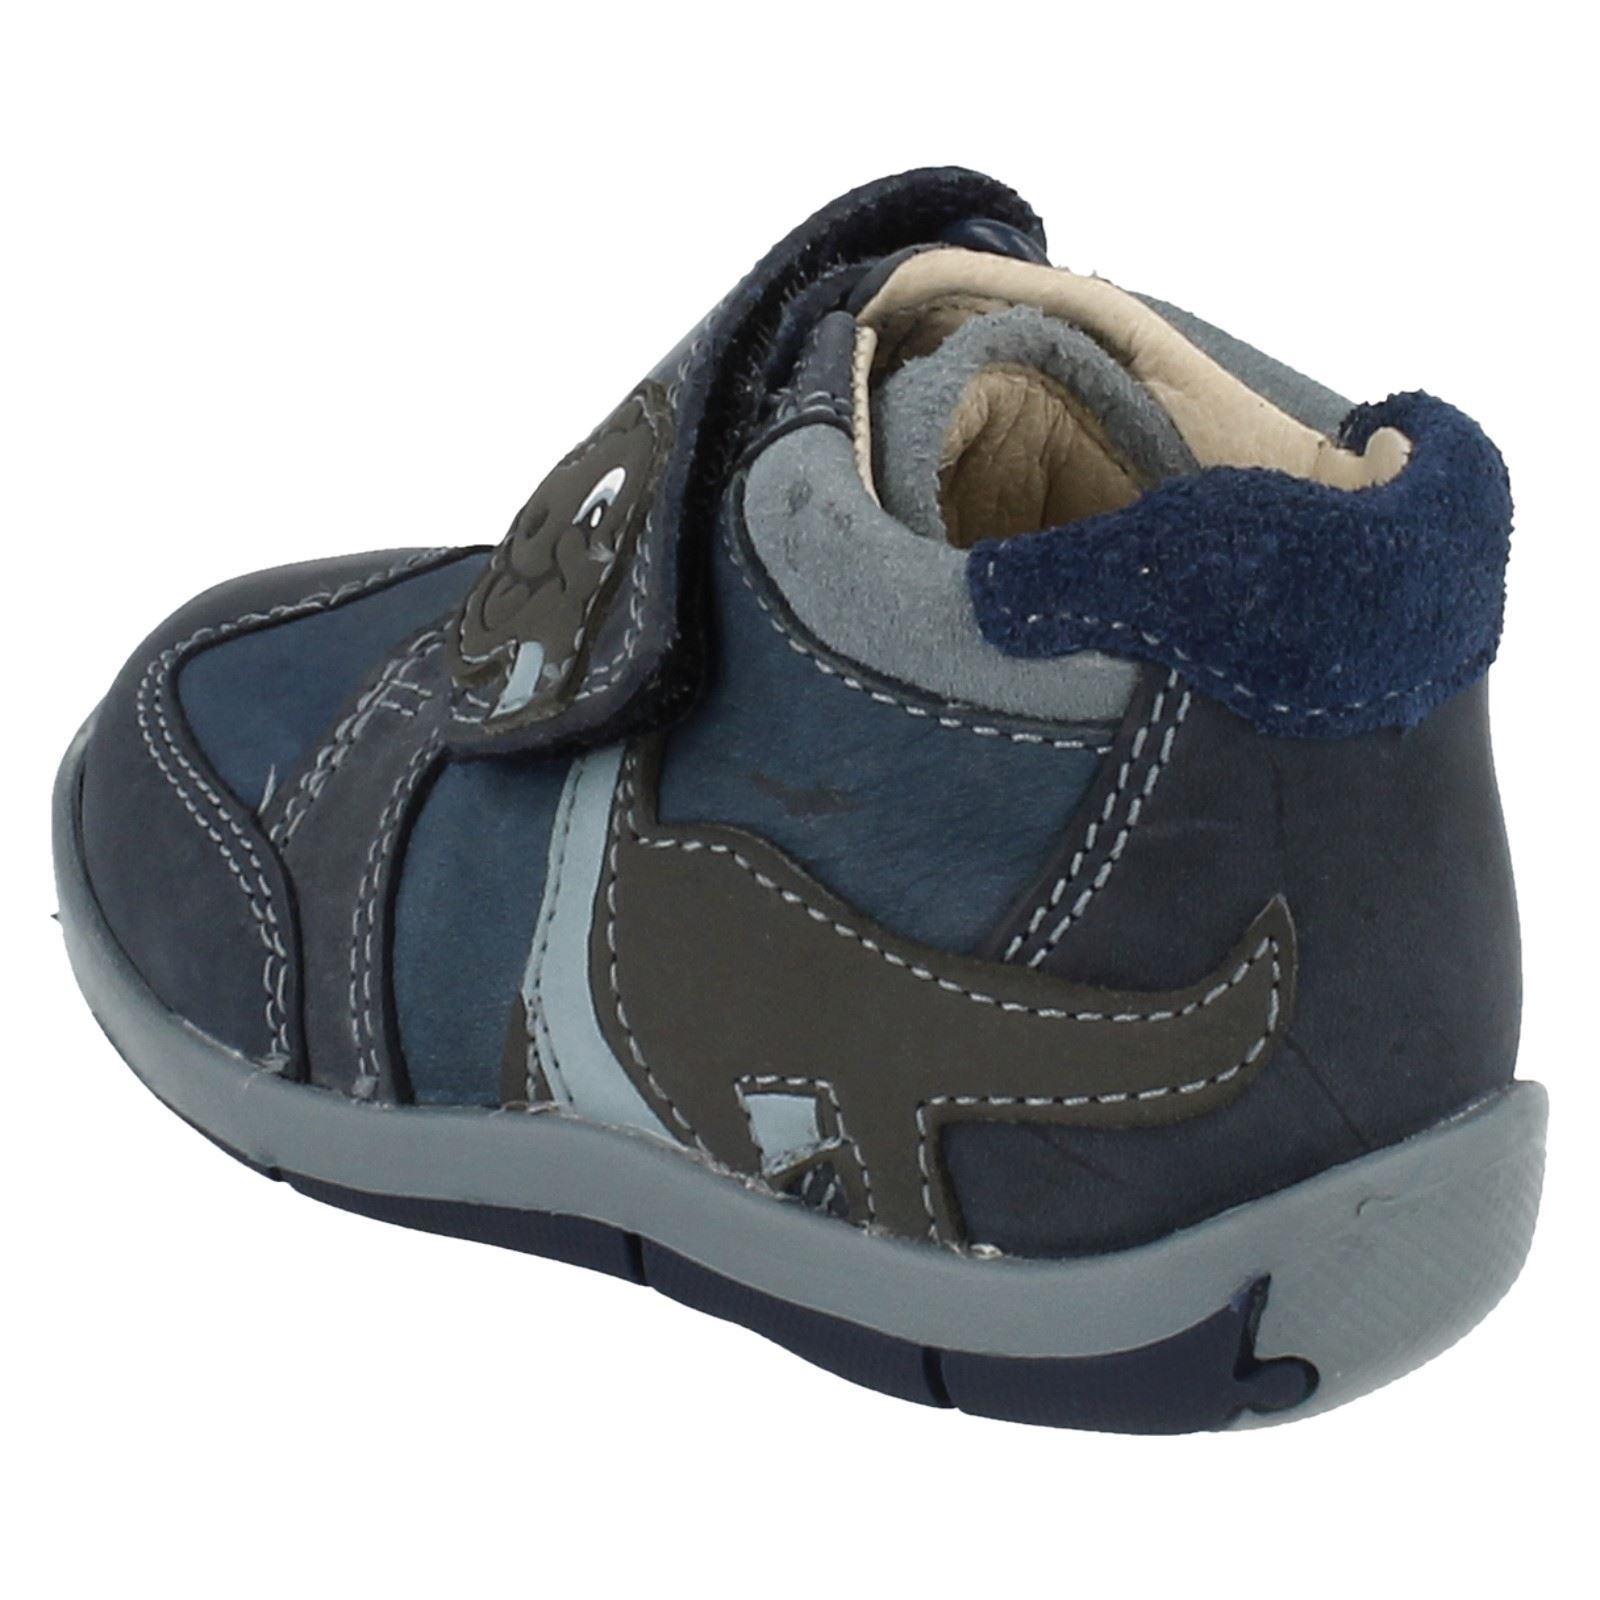 faf20e1dd4d Infant-Boys-Clarks-First-Boots-Diplo-Time thumbnail 4